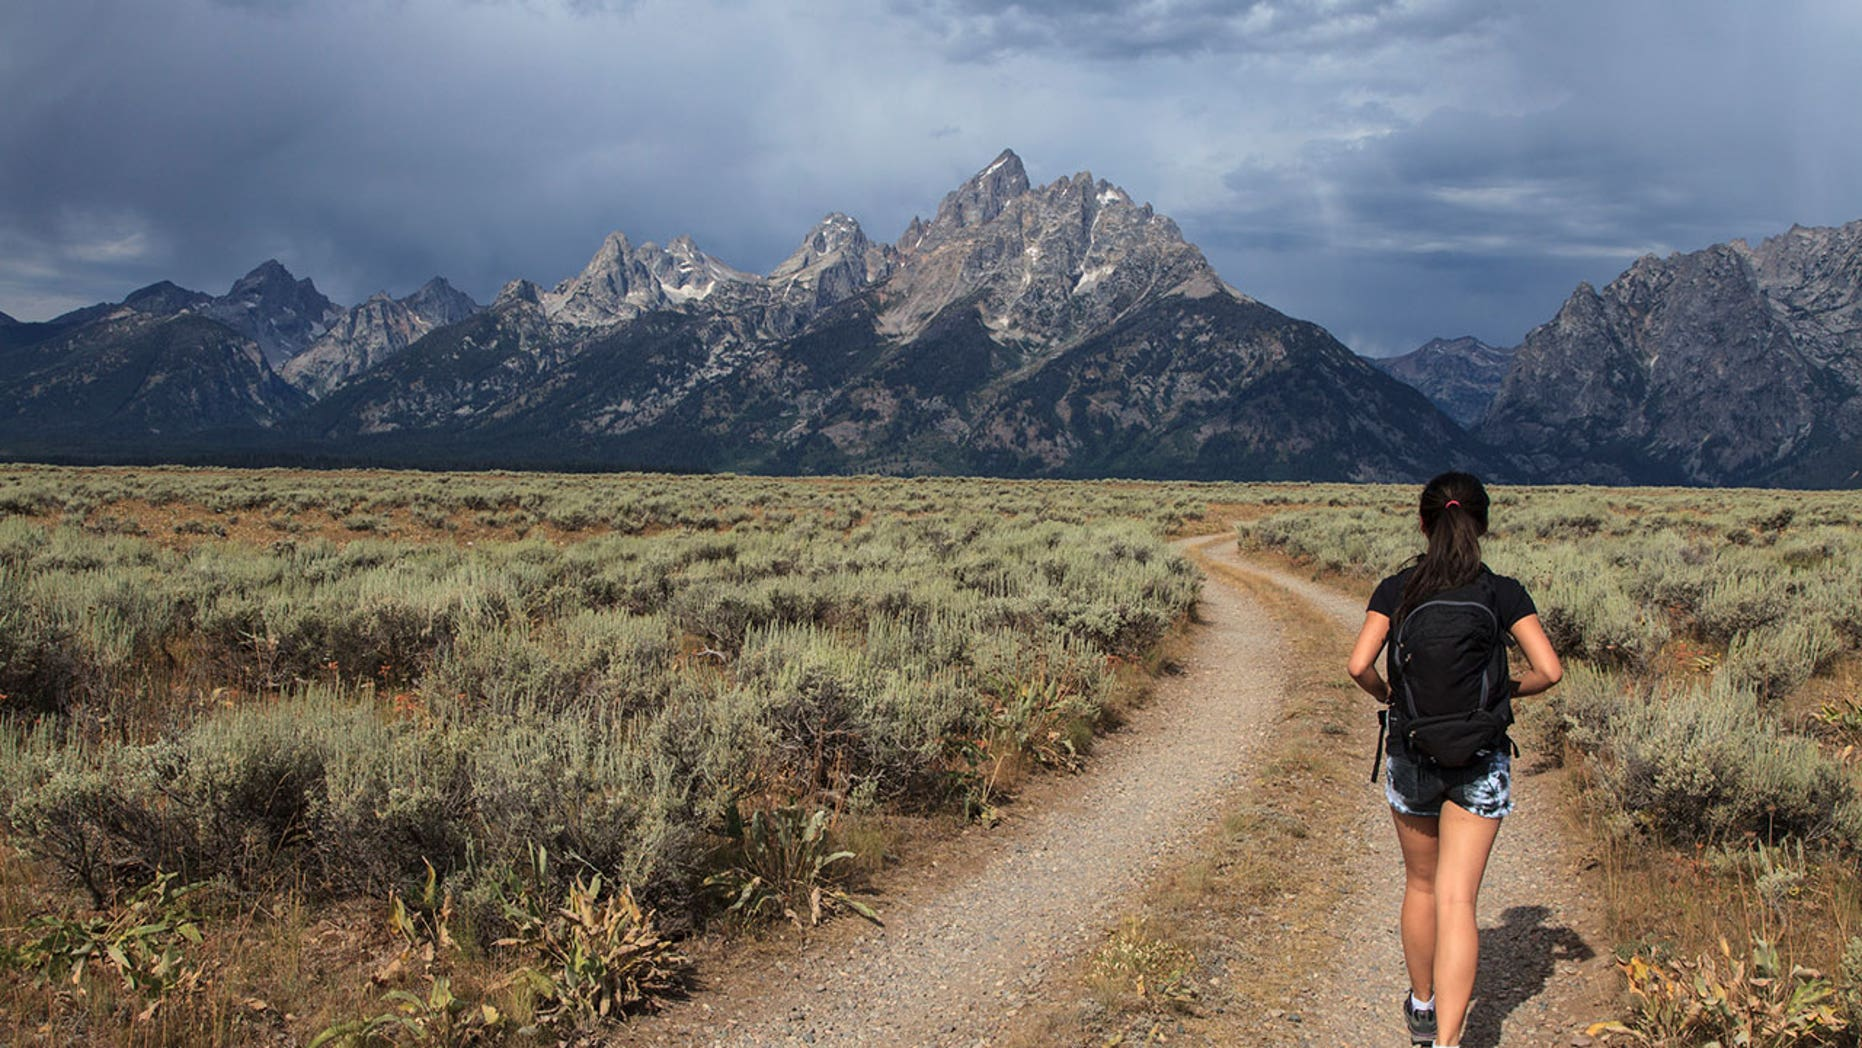 The national parks near Jackson Hole, Wyo., are mostly in the path of totality.